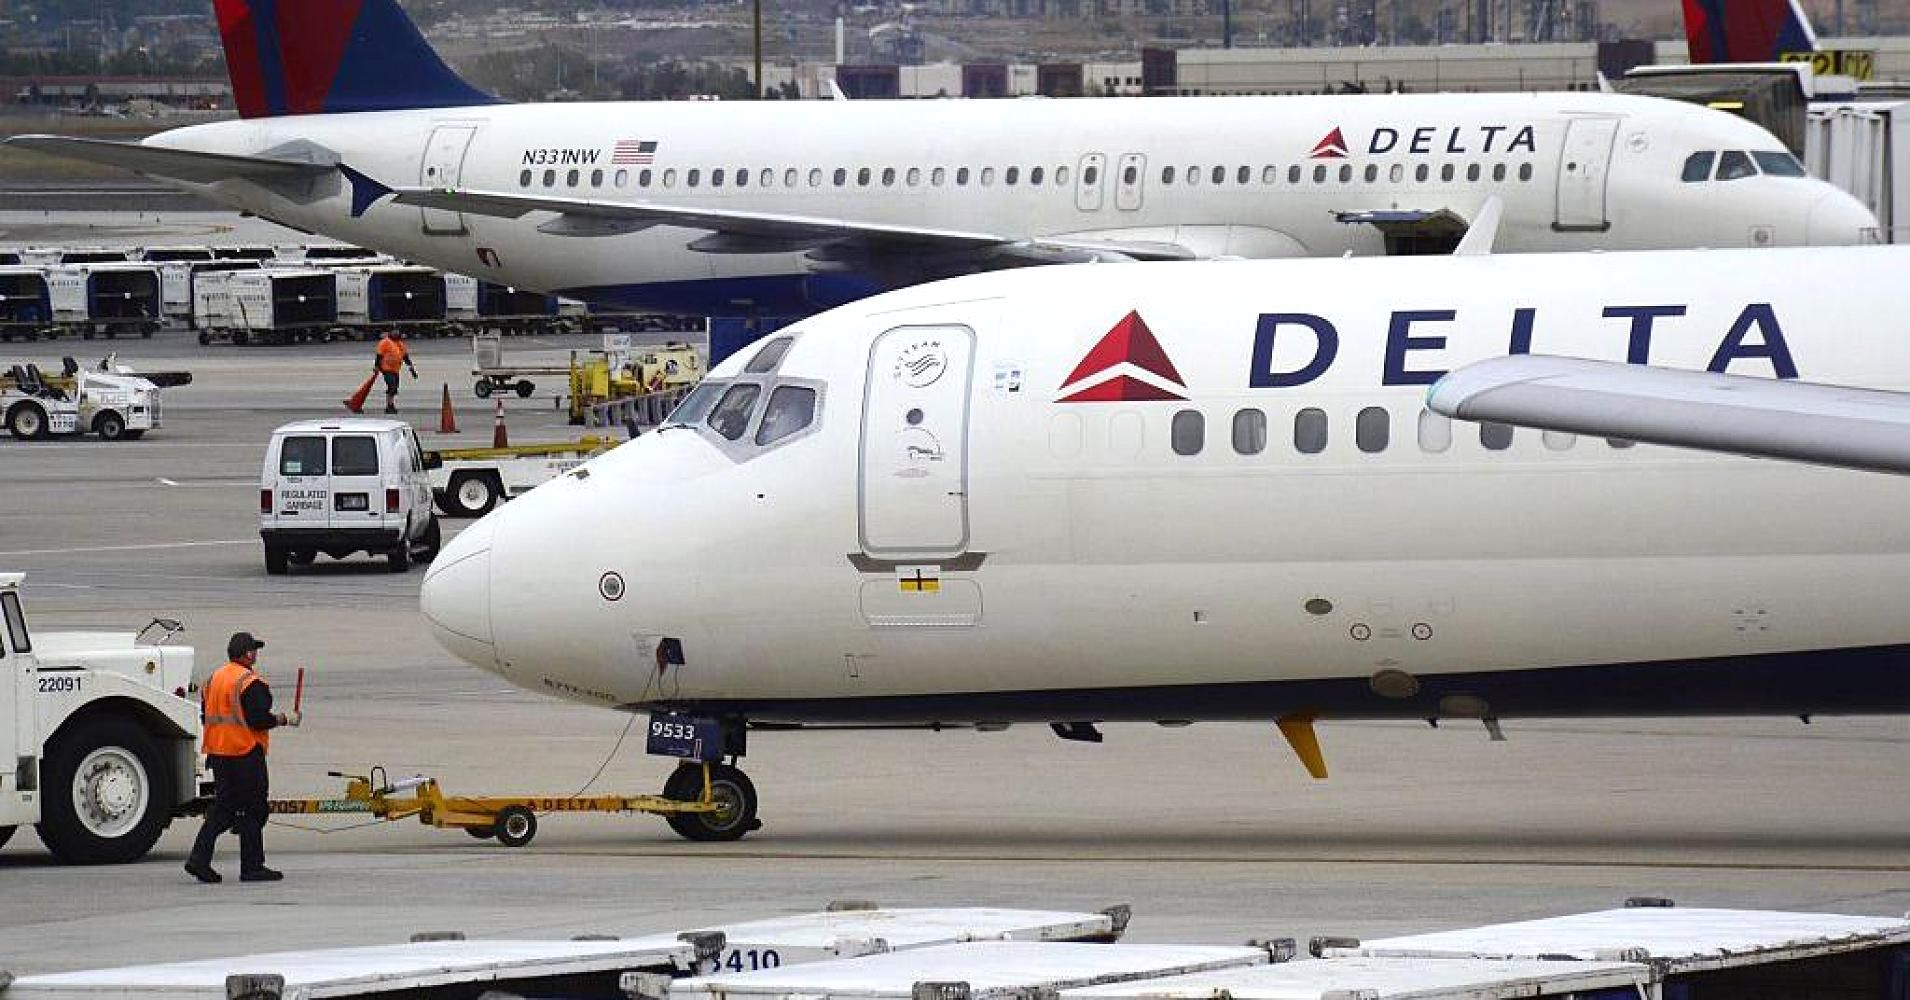 Delta operations returning to normal after systems outage | Delta ...